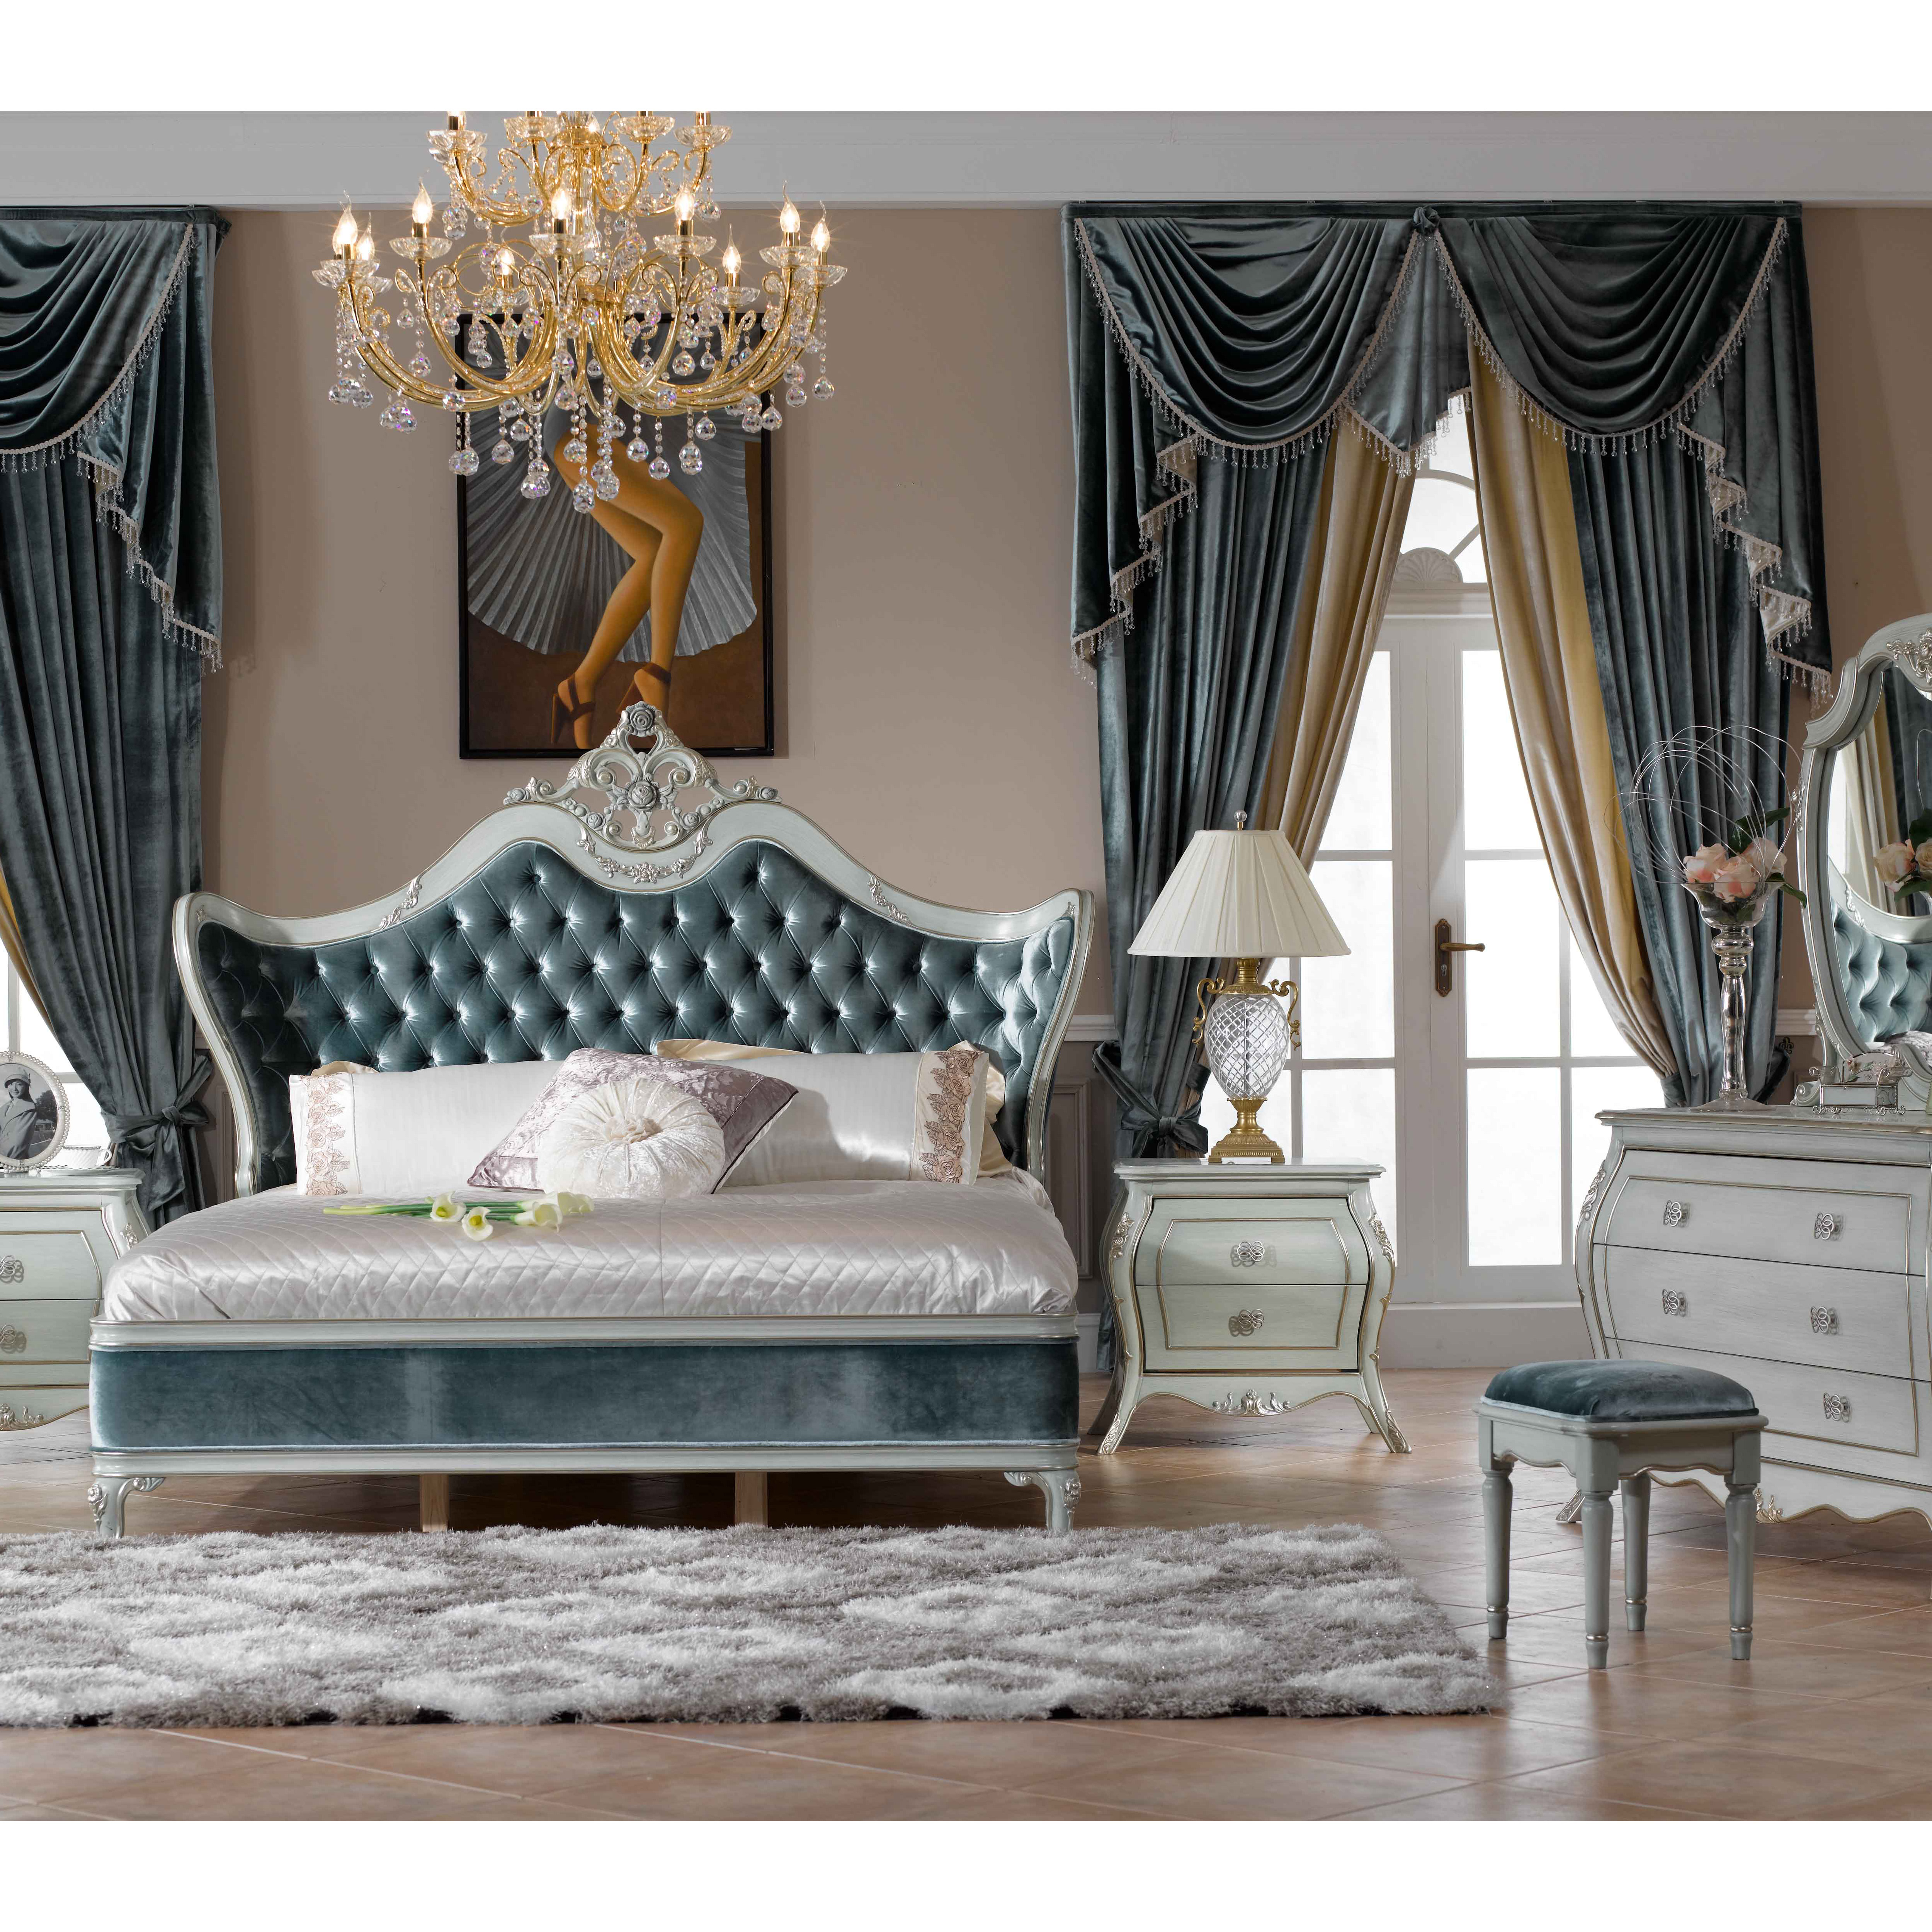 US $1168.0 |Italy style European classical white and king size bedroom  furniture set 0402 713-in Bedroom Sets from Furniture on AliExpress